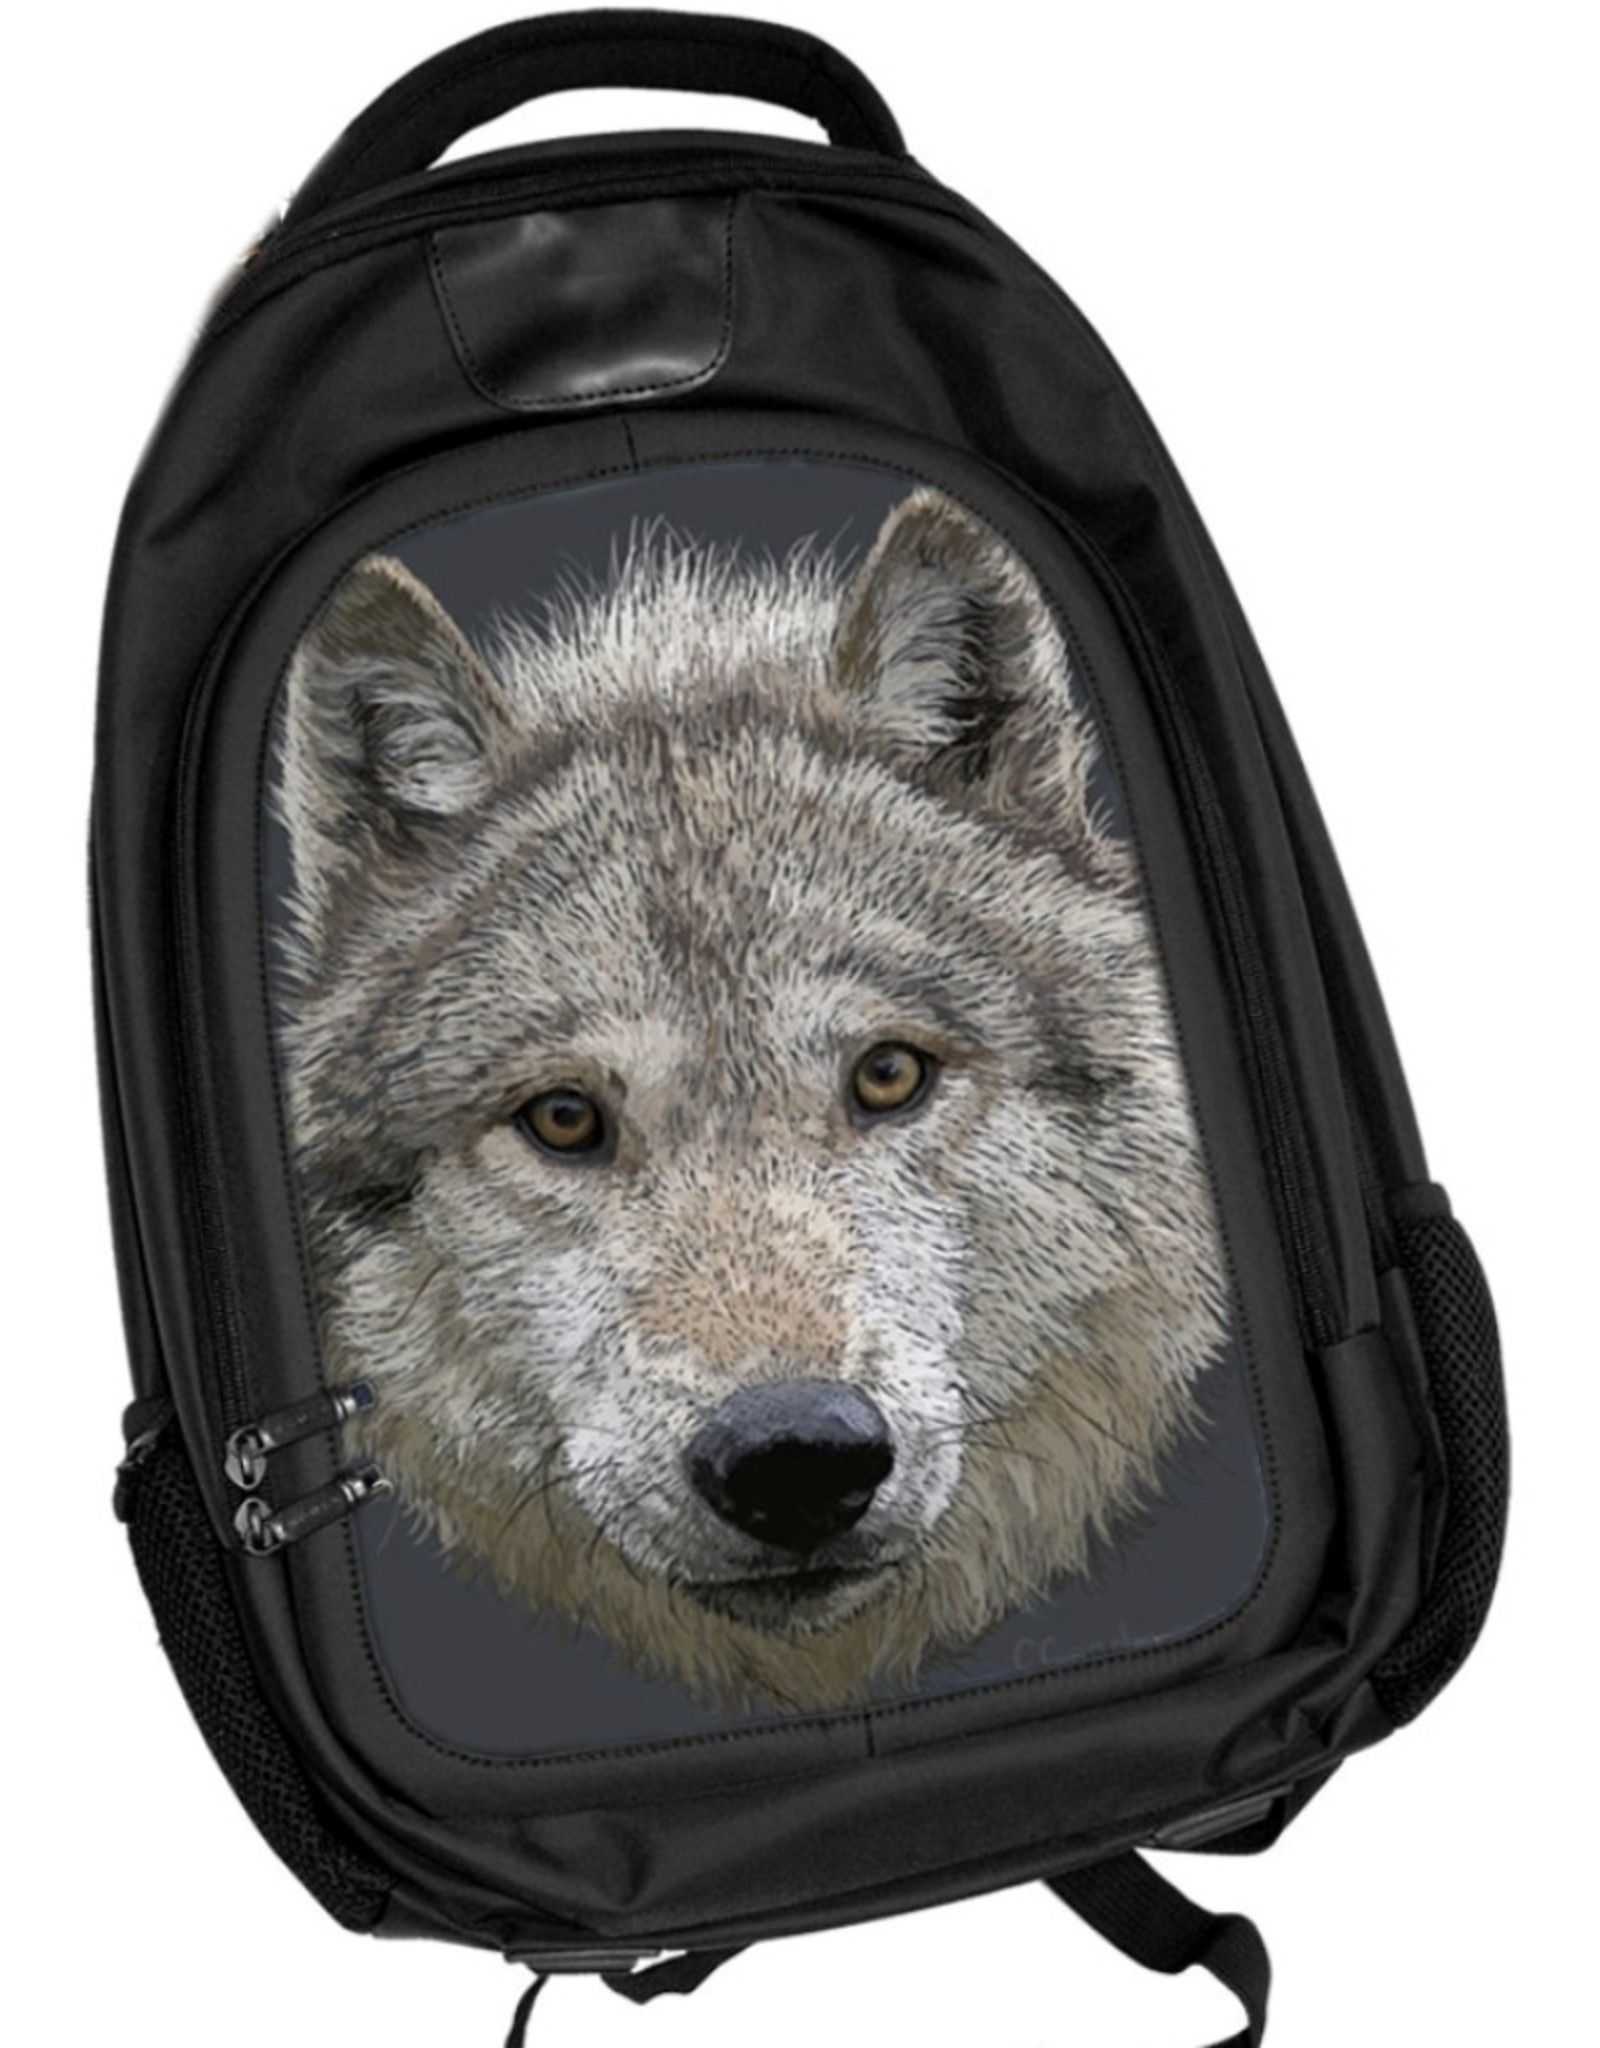 Caszmy Fantasy bags - Caszmy Collection 3D lenticular Wolf Stare backpack